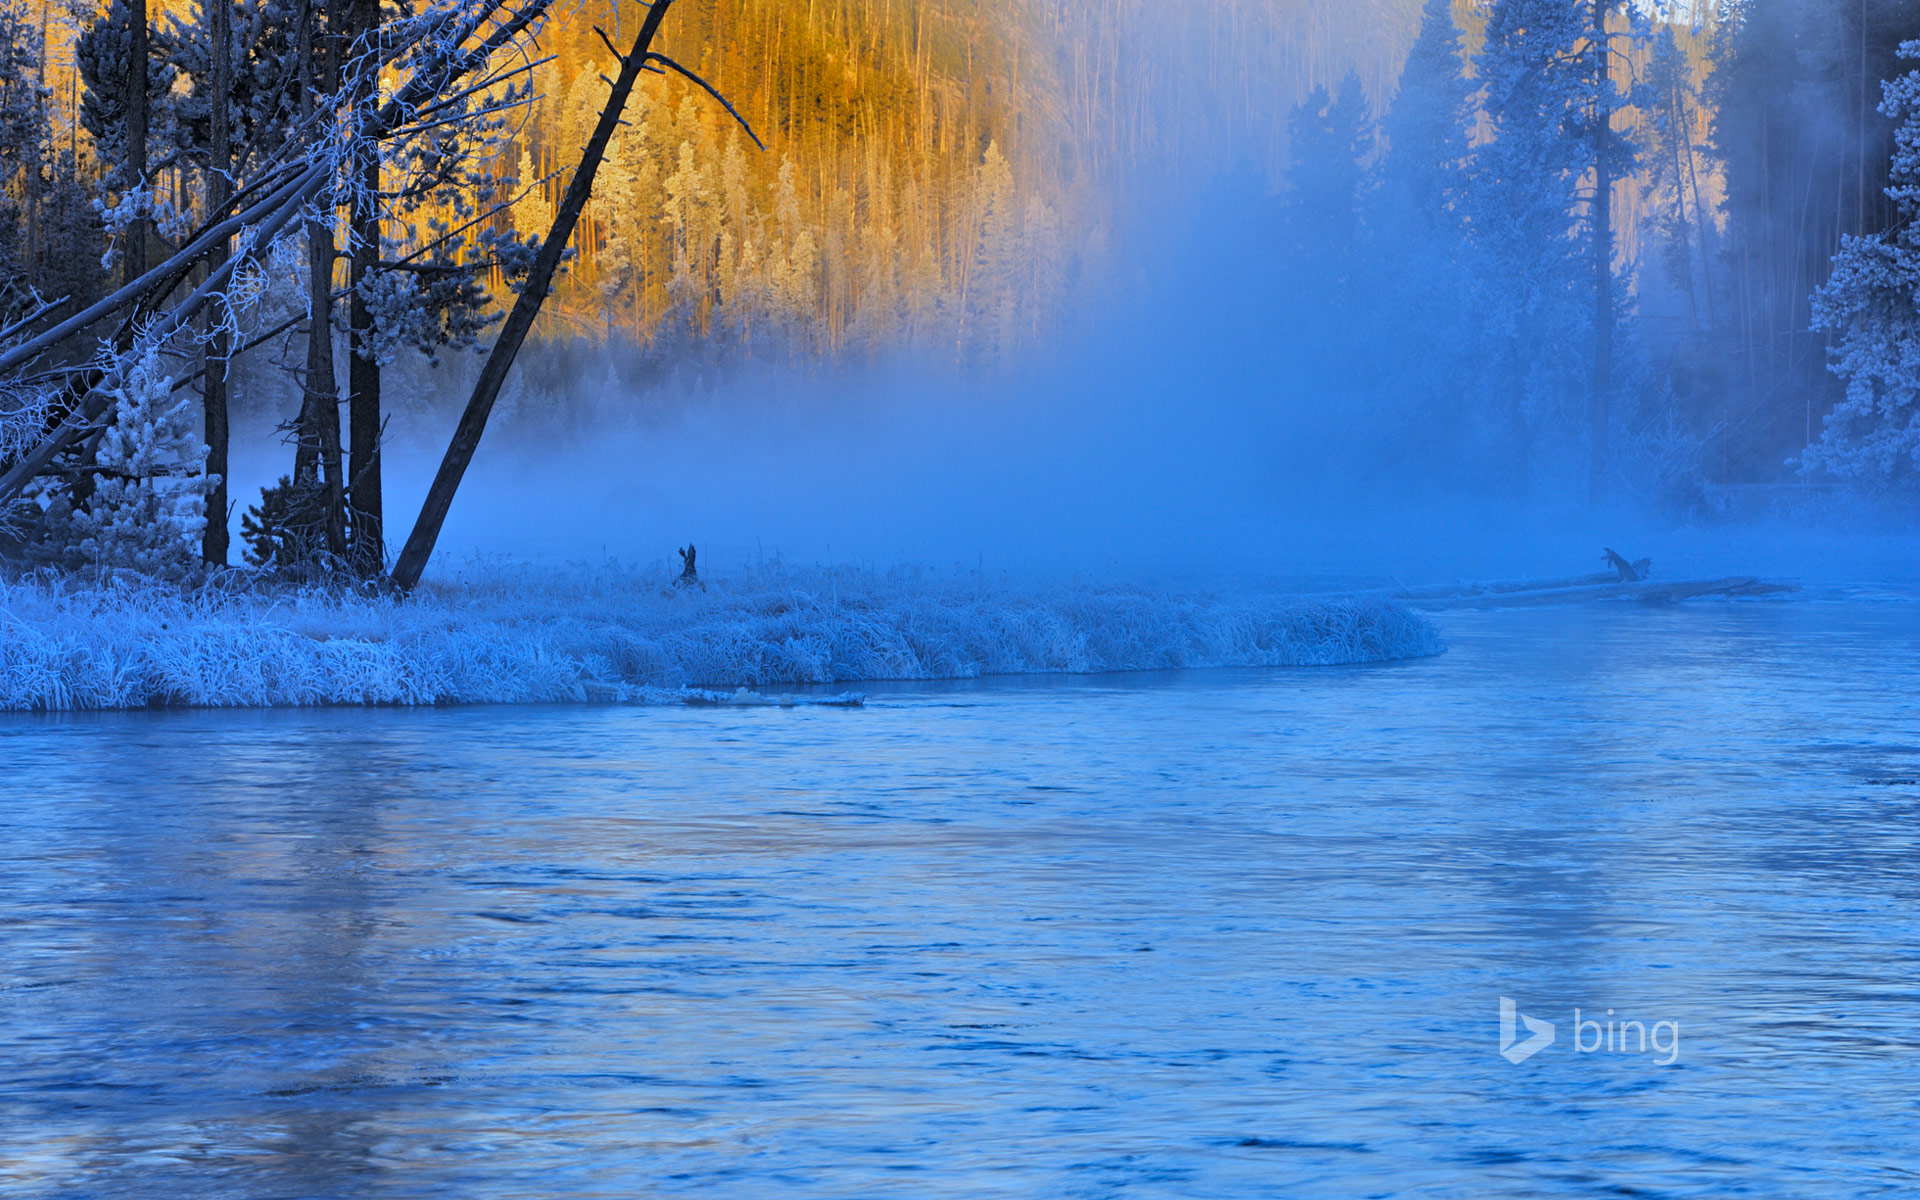 Firehole River in Yellowstone National Park, Wyoming